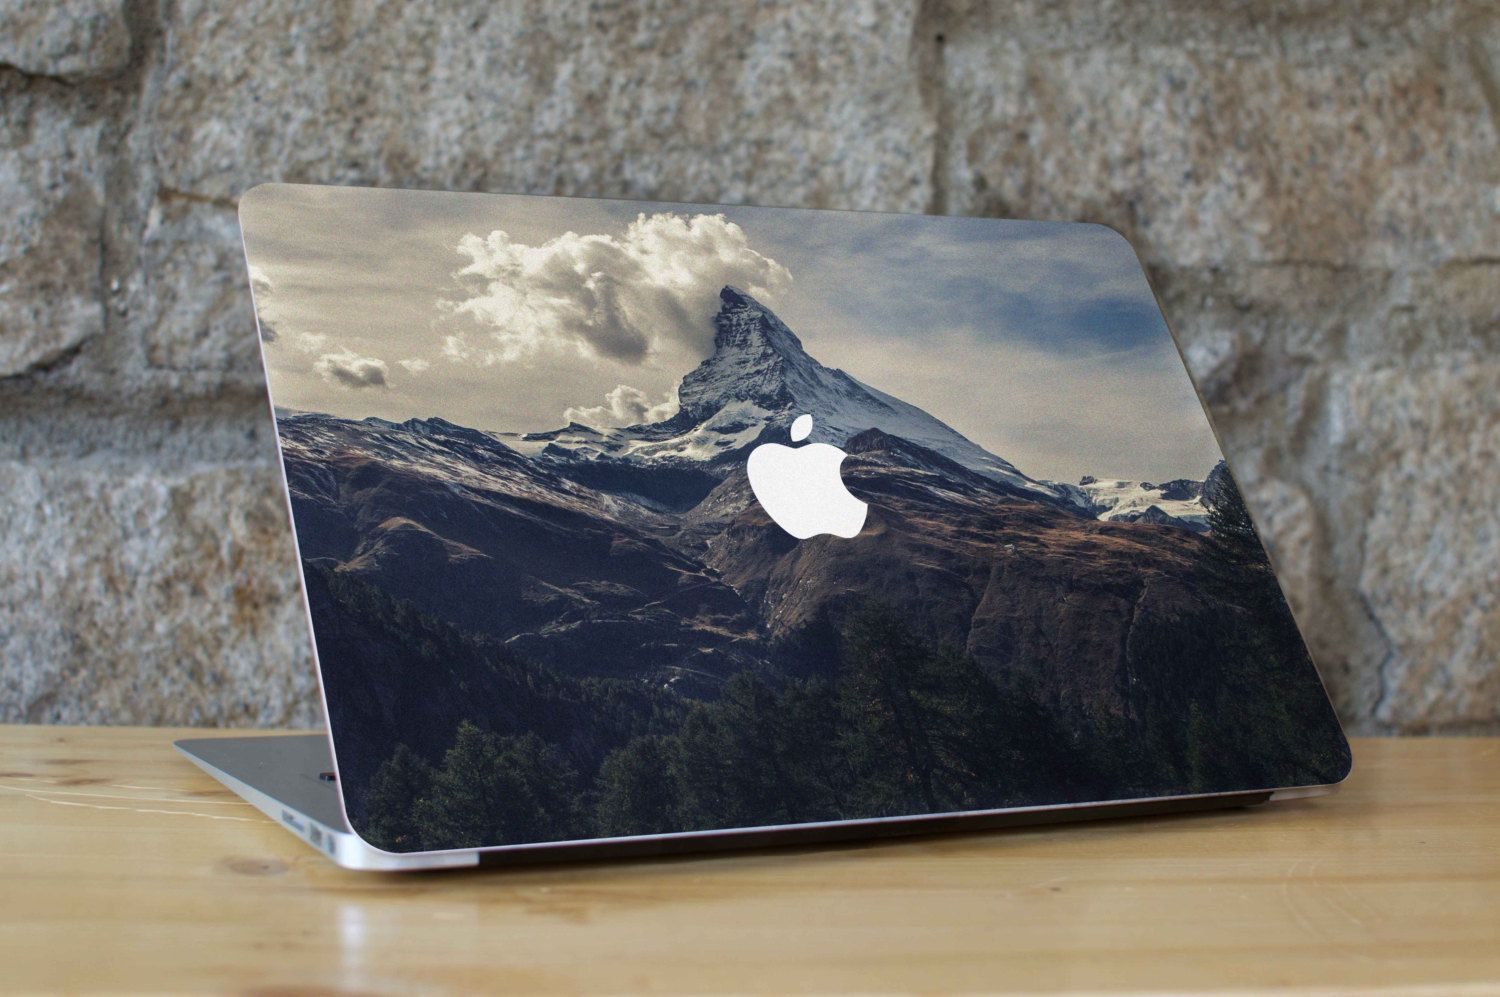 Amazing Mountain Photo  - Peel and Stick Fabric Macbook Skin Cover Decal for all Macbook Models by WallMac on Etsy https://www.etsy.com/listing/261828981/amazing-mountain-photo-peel-and-stick